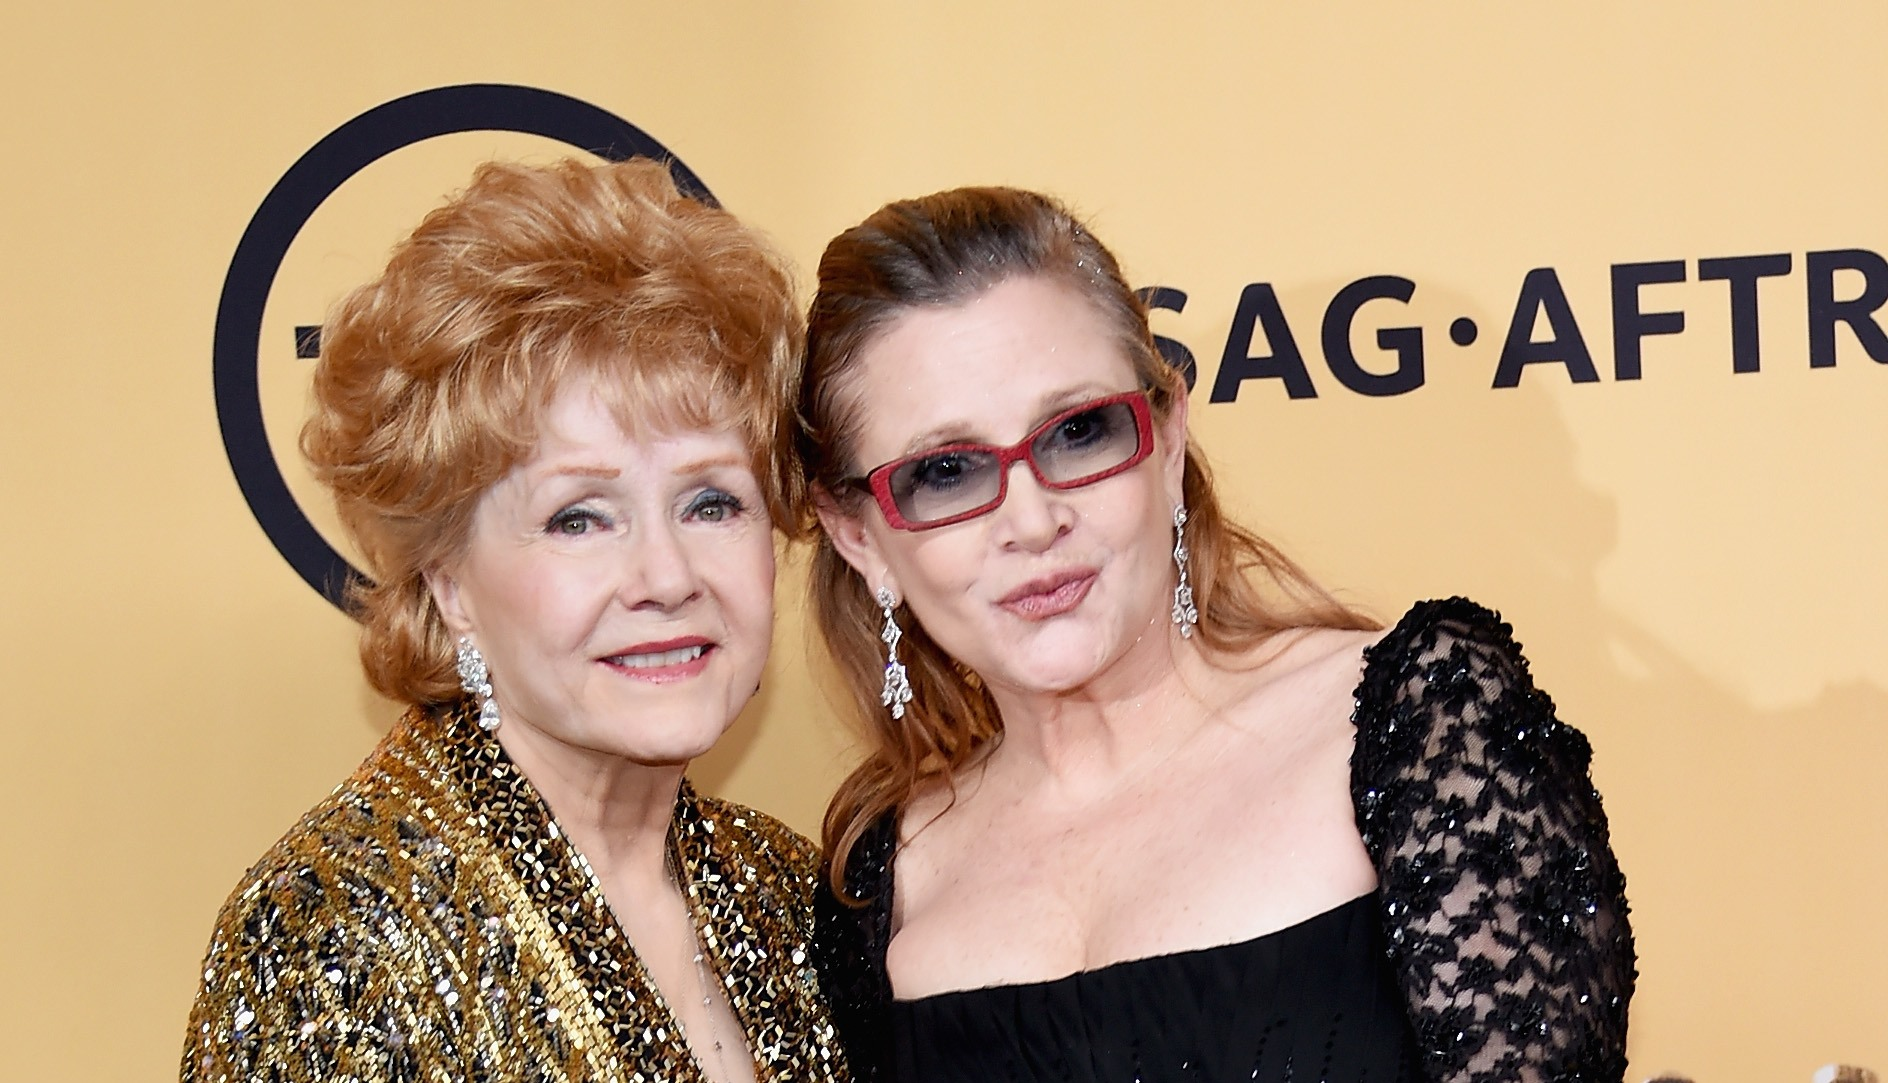 Debbie Reynolds has died at age 84. She was admitted to the hospital earlier on December 28, 2016 after suffering a stroke. Her daughter, Carrie Fisher recently passed away after suffering a heart attack on a flight from London to Los Angeles. (Getty Images)